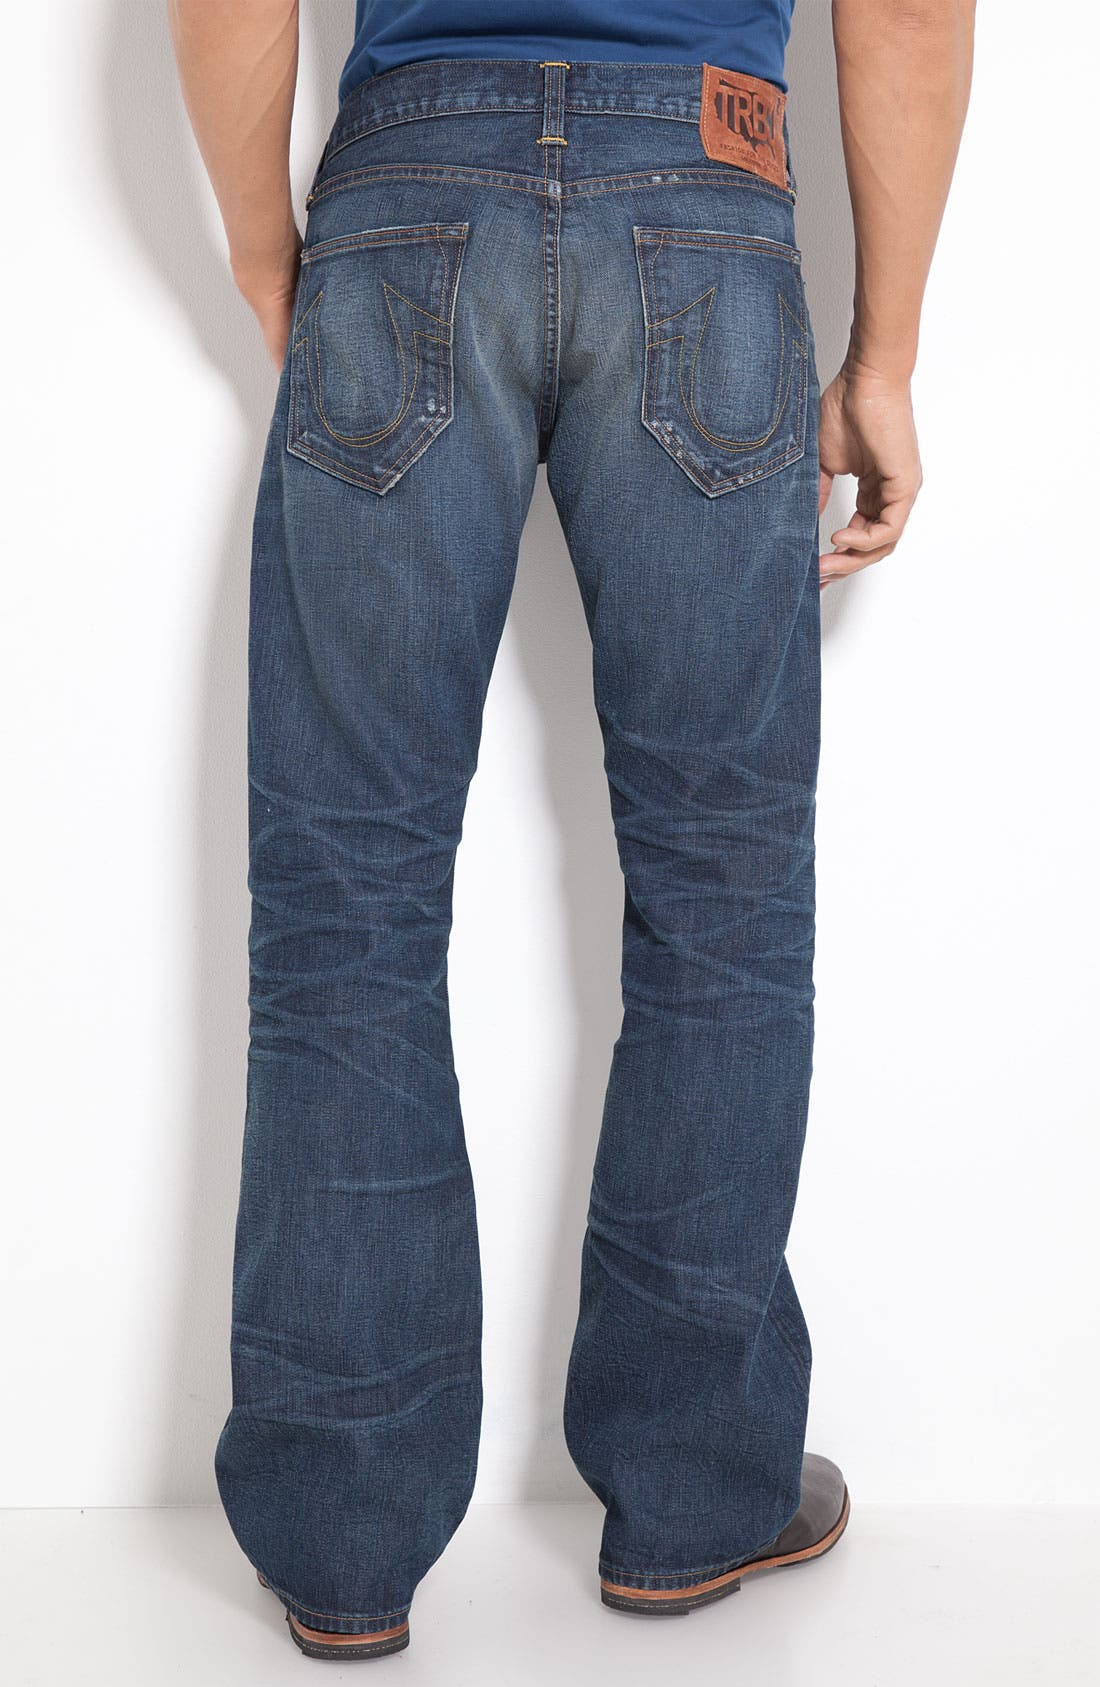 Alternate Image 1 Selected - True Religion Brand Jeans 'Danny Phoenix' Bootcut Jeans (Blue Grass)